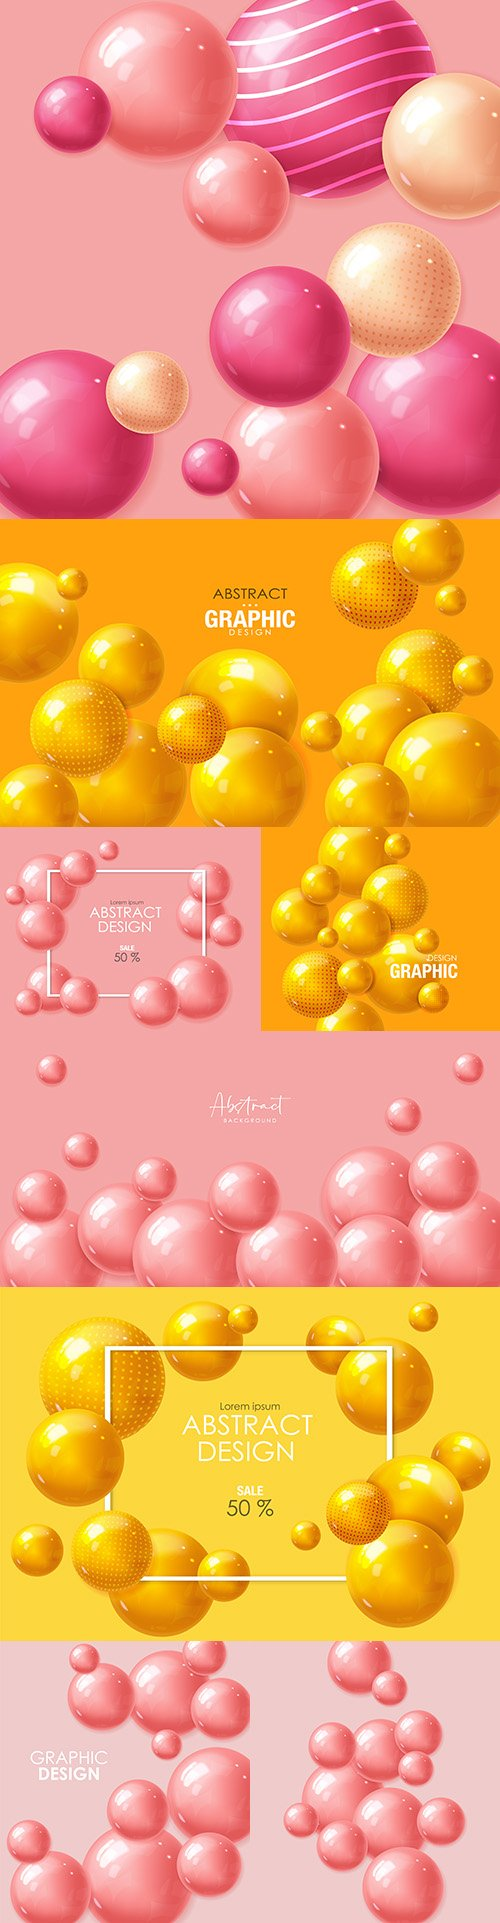 Realistic sphere pink and yellow abstract background